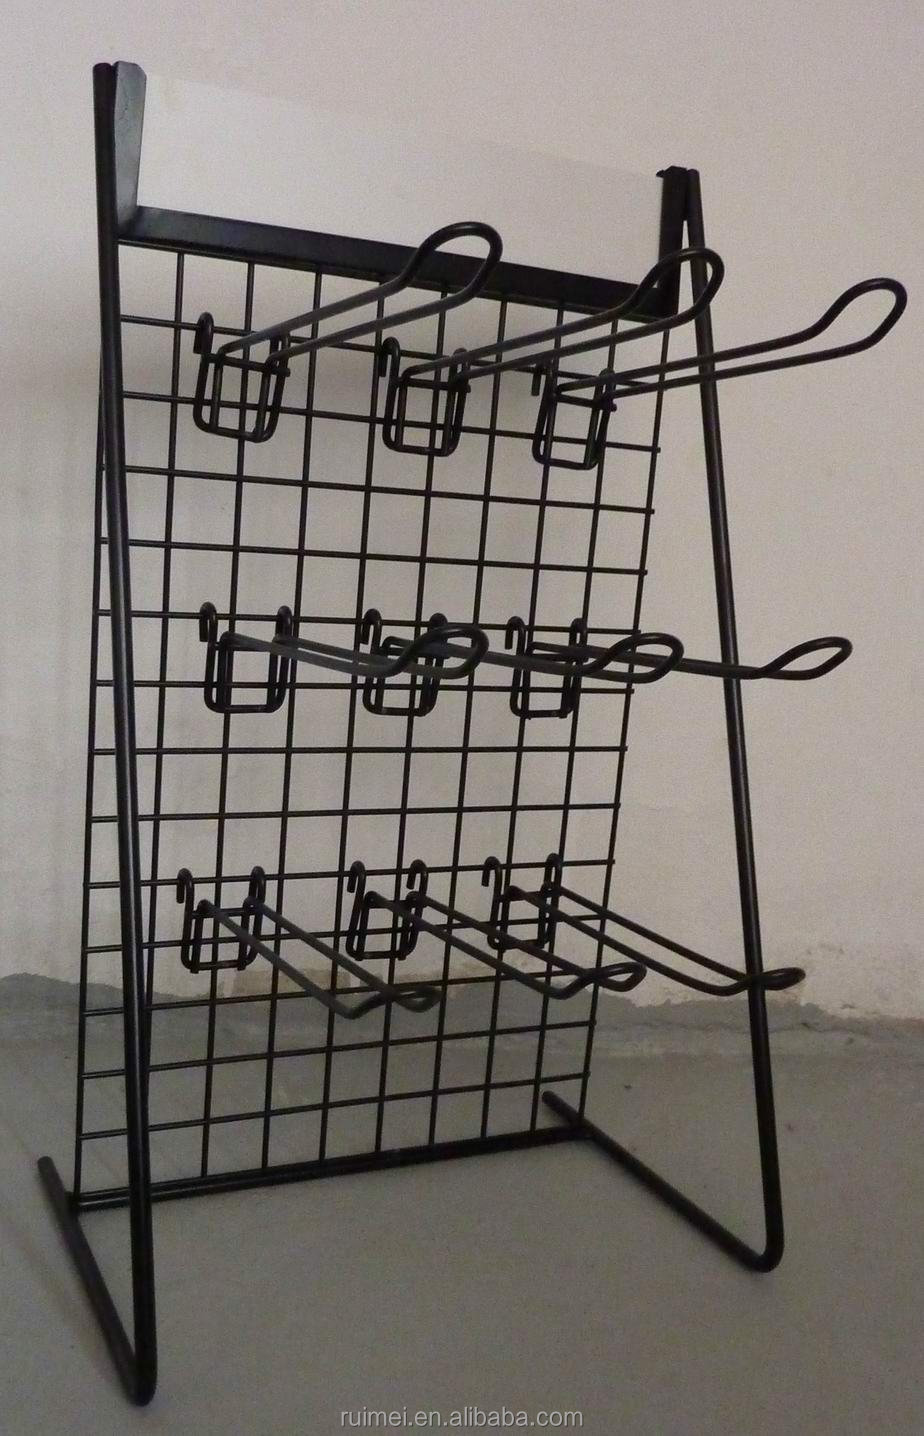 Countertop Metal Wire Gridwall Hook Slatwall Hook Mesh Display Rack